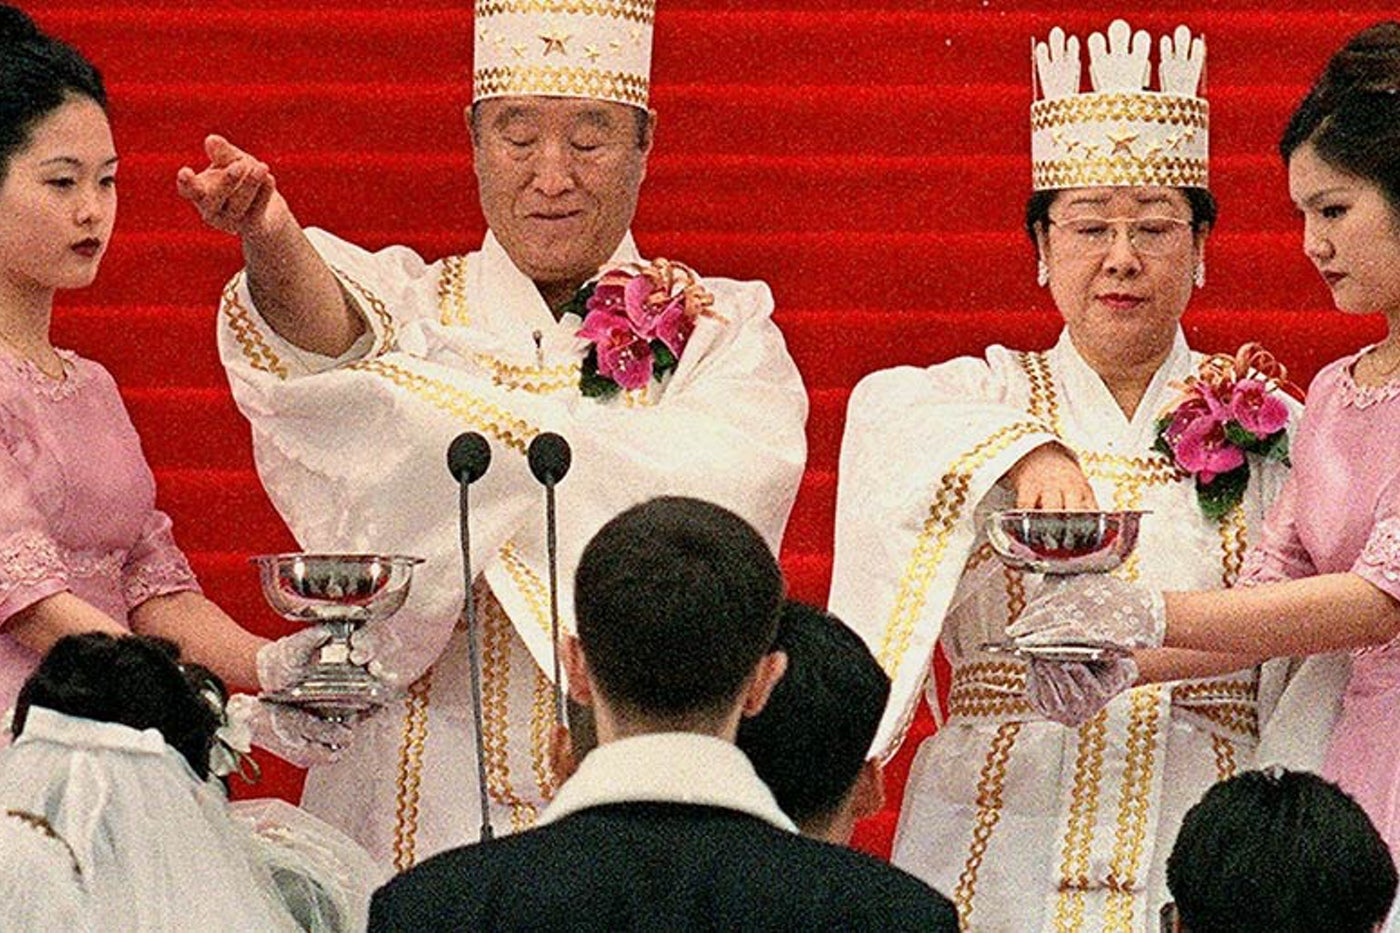 Unification Church Profile: The Fall of the House of Moon | The New Republic